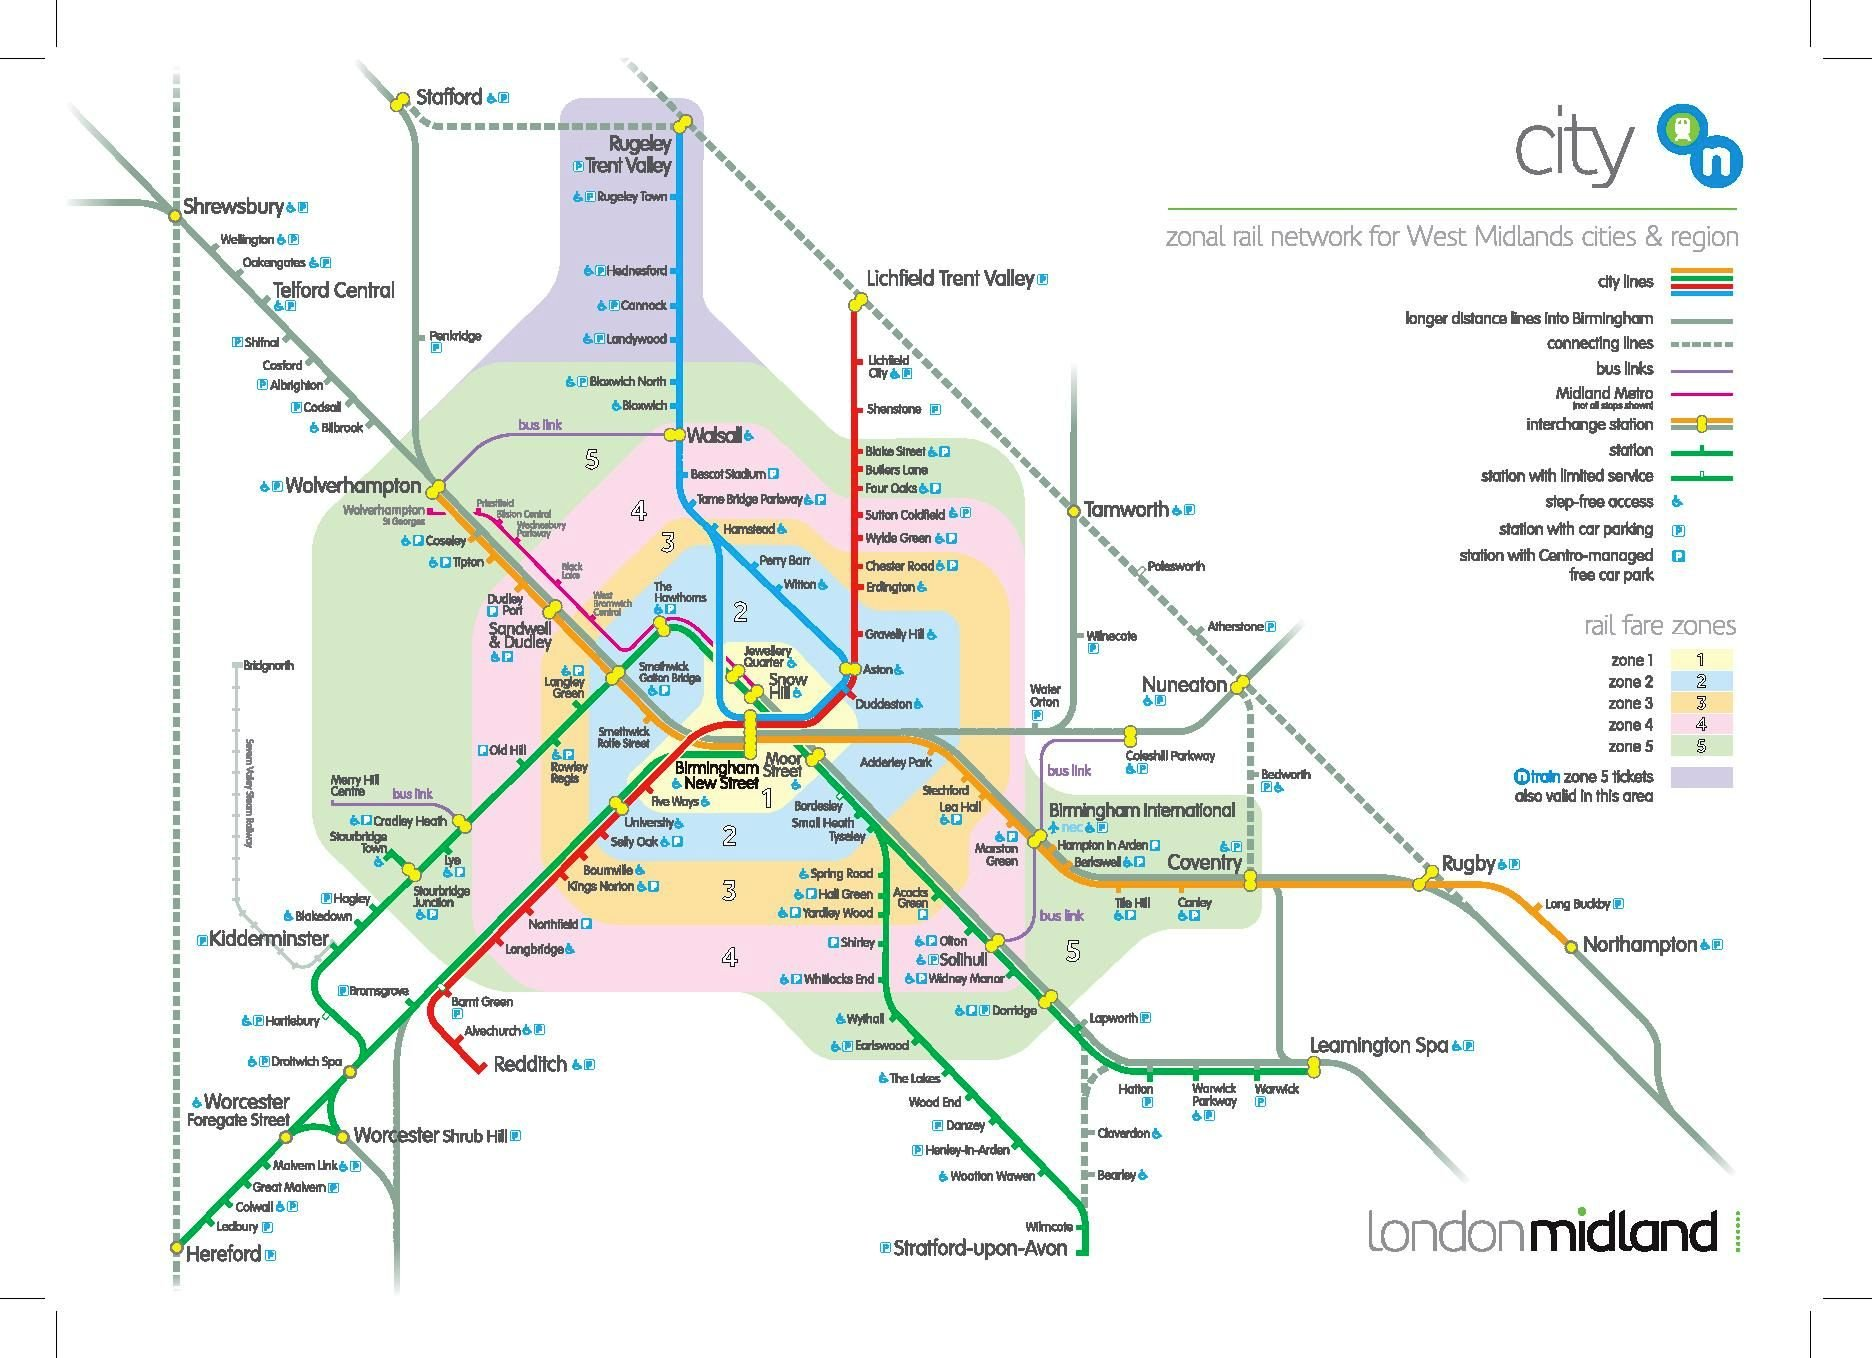 Image showing the London Midland local routes map circa 2015.